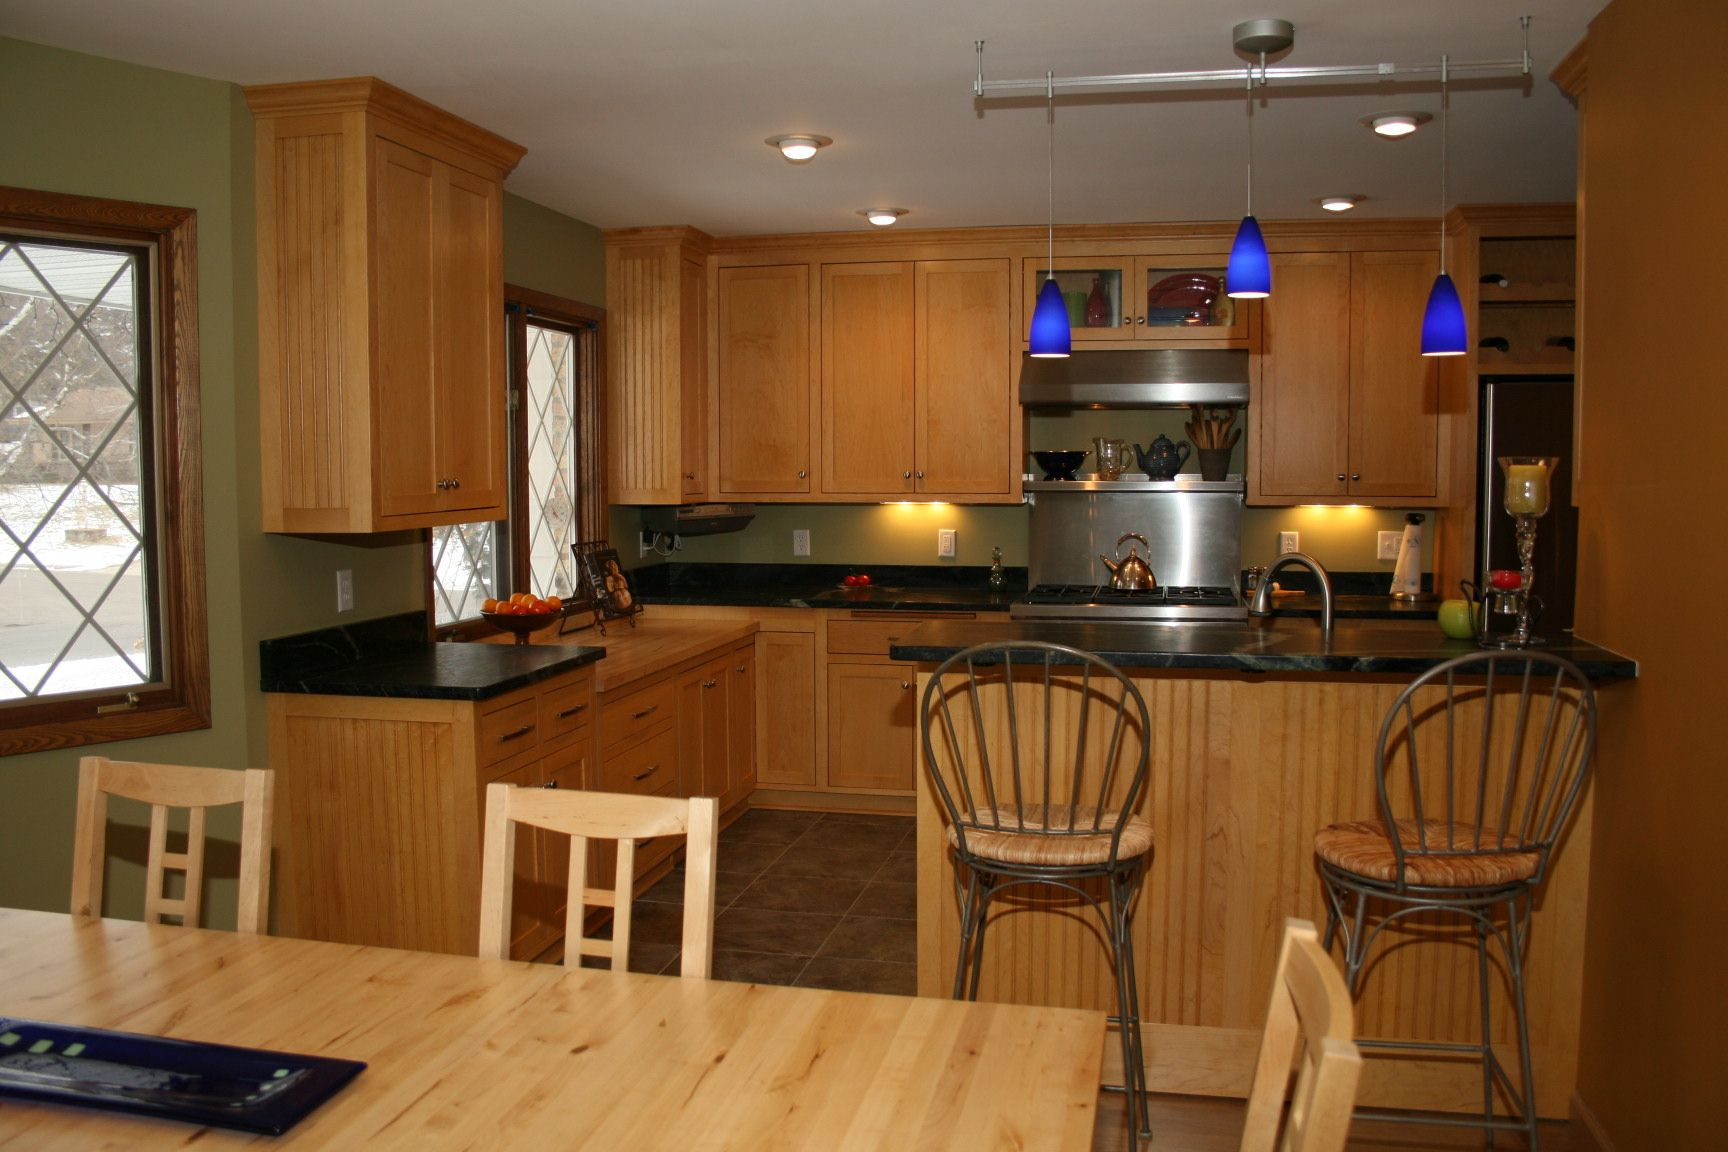 Kitchens With Black Granite Counter Tops And Maple ... on Maple Cabinets With Black Granite Countertops  id=98929